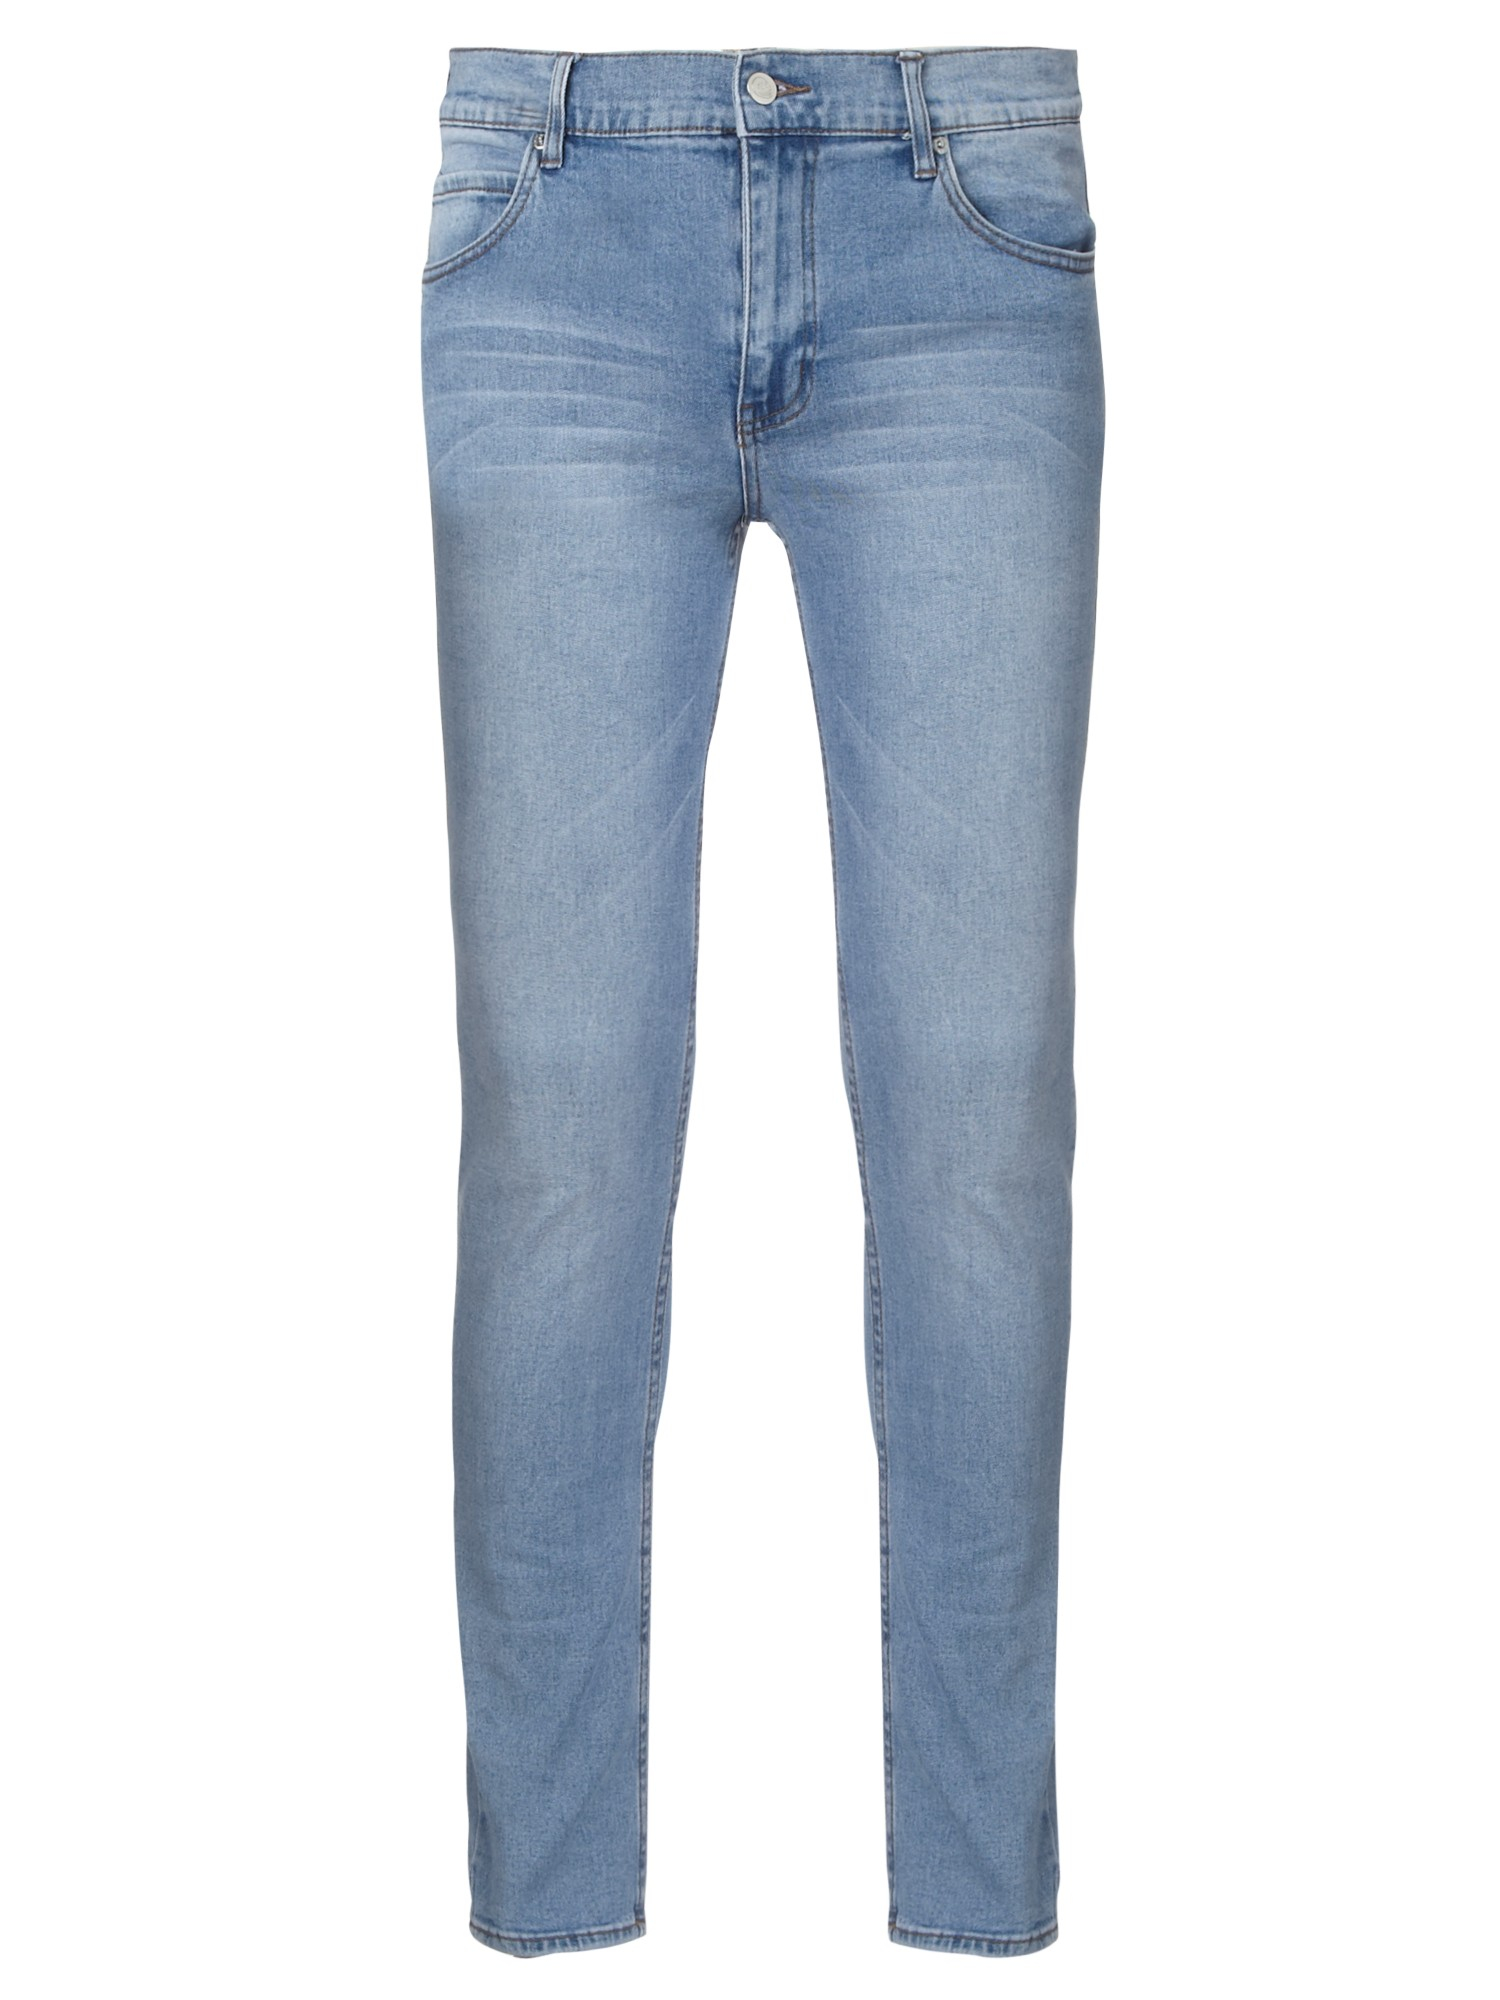 Cheap Monday Skinny Tight Gg Jeans in Stonewash (Blue) for Men